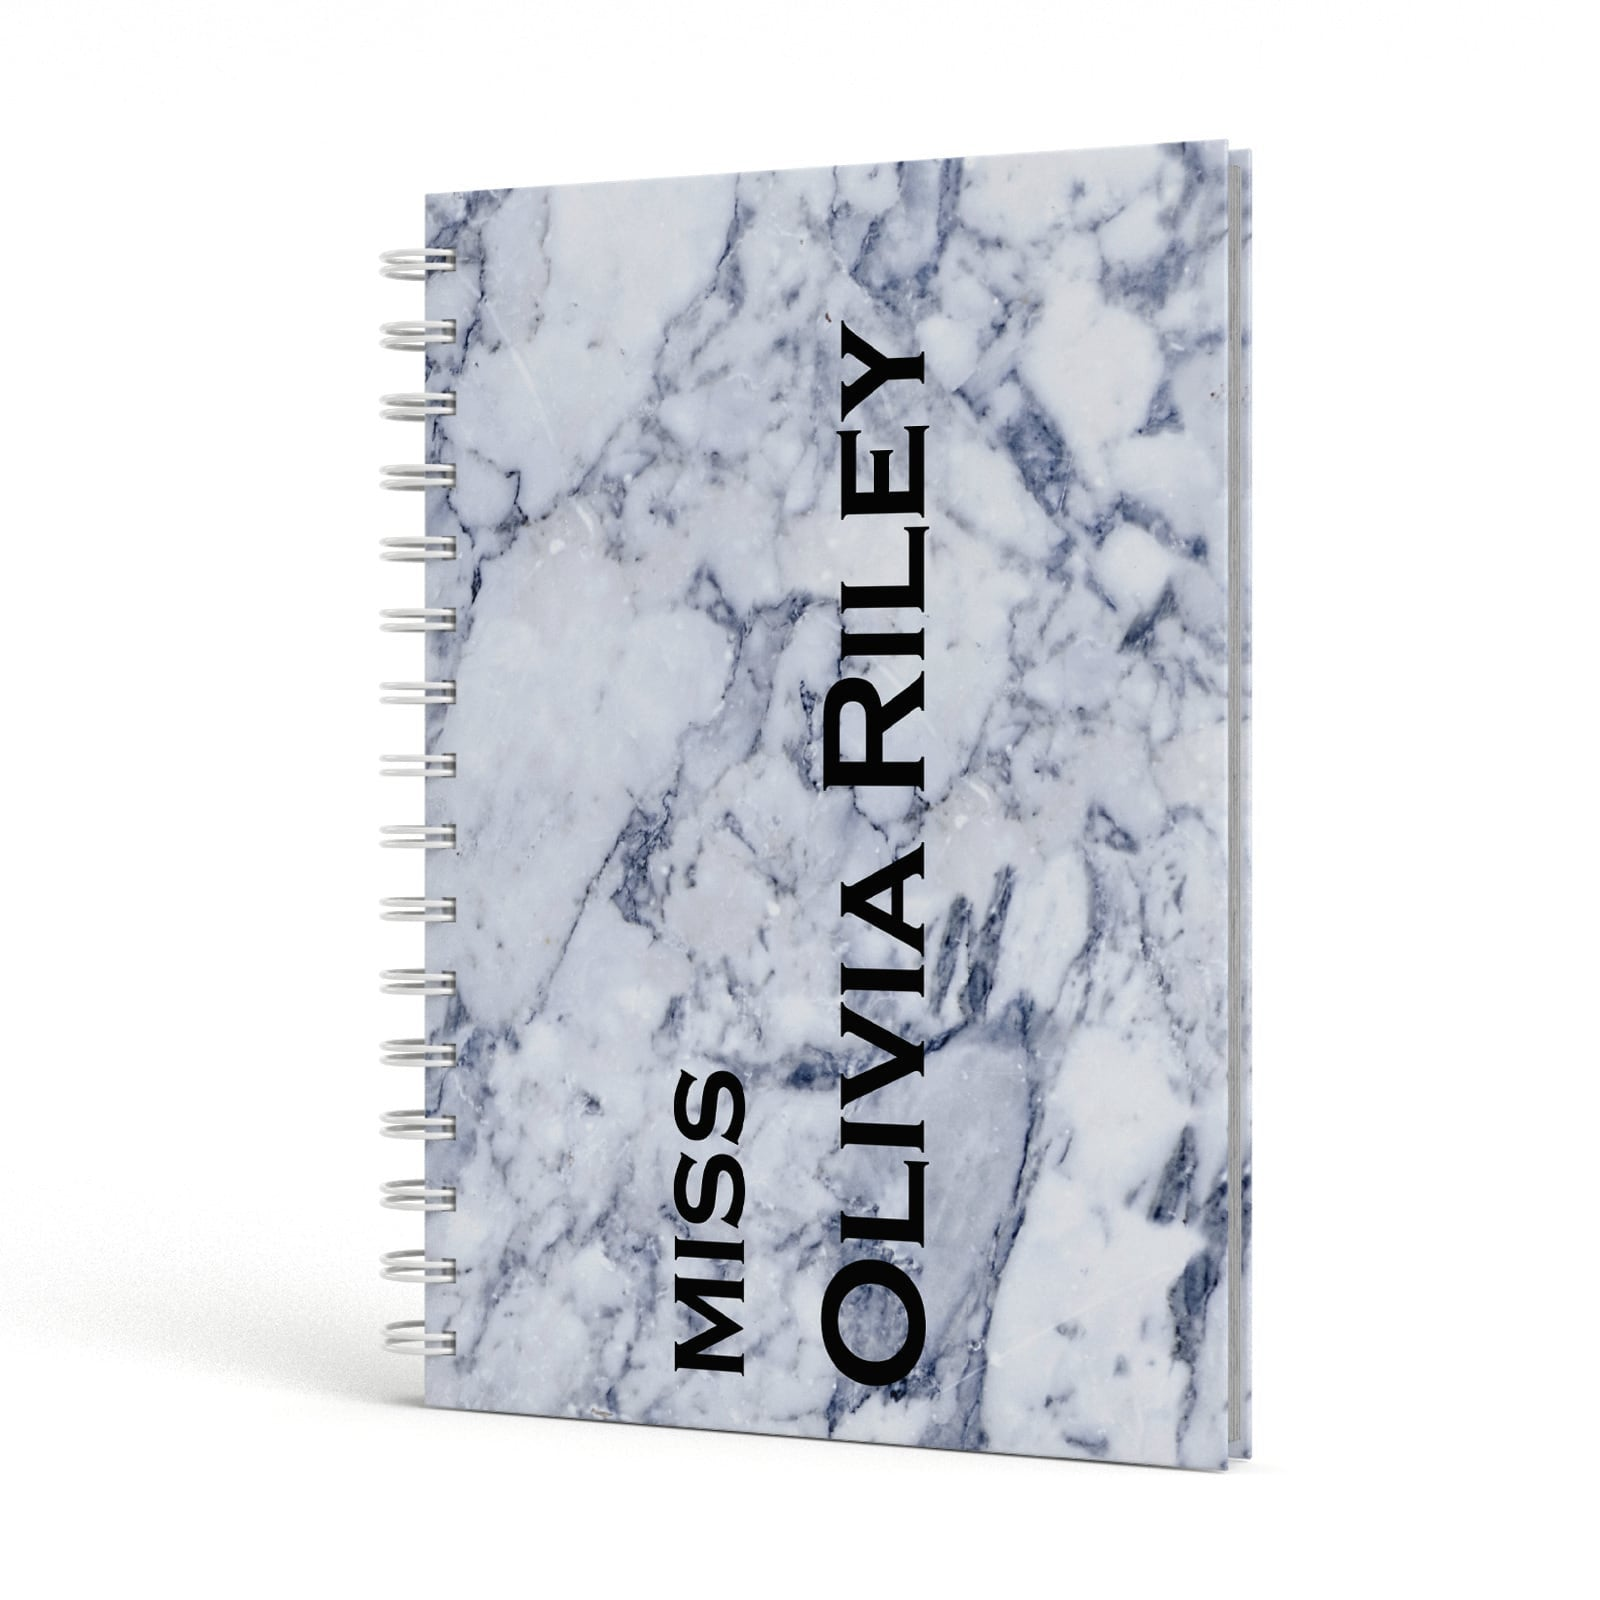 Full Name Grey Marble A5 Hardcover Notebook Side View